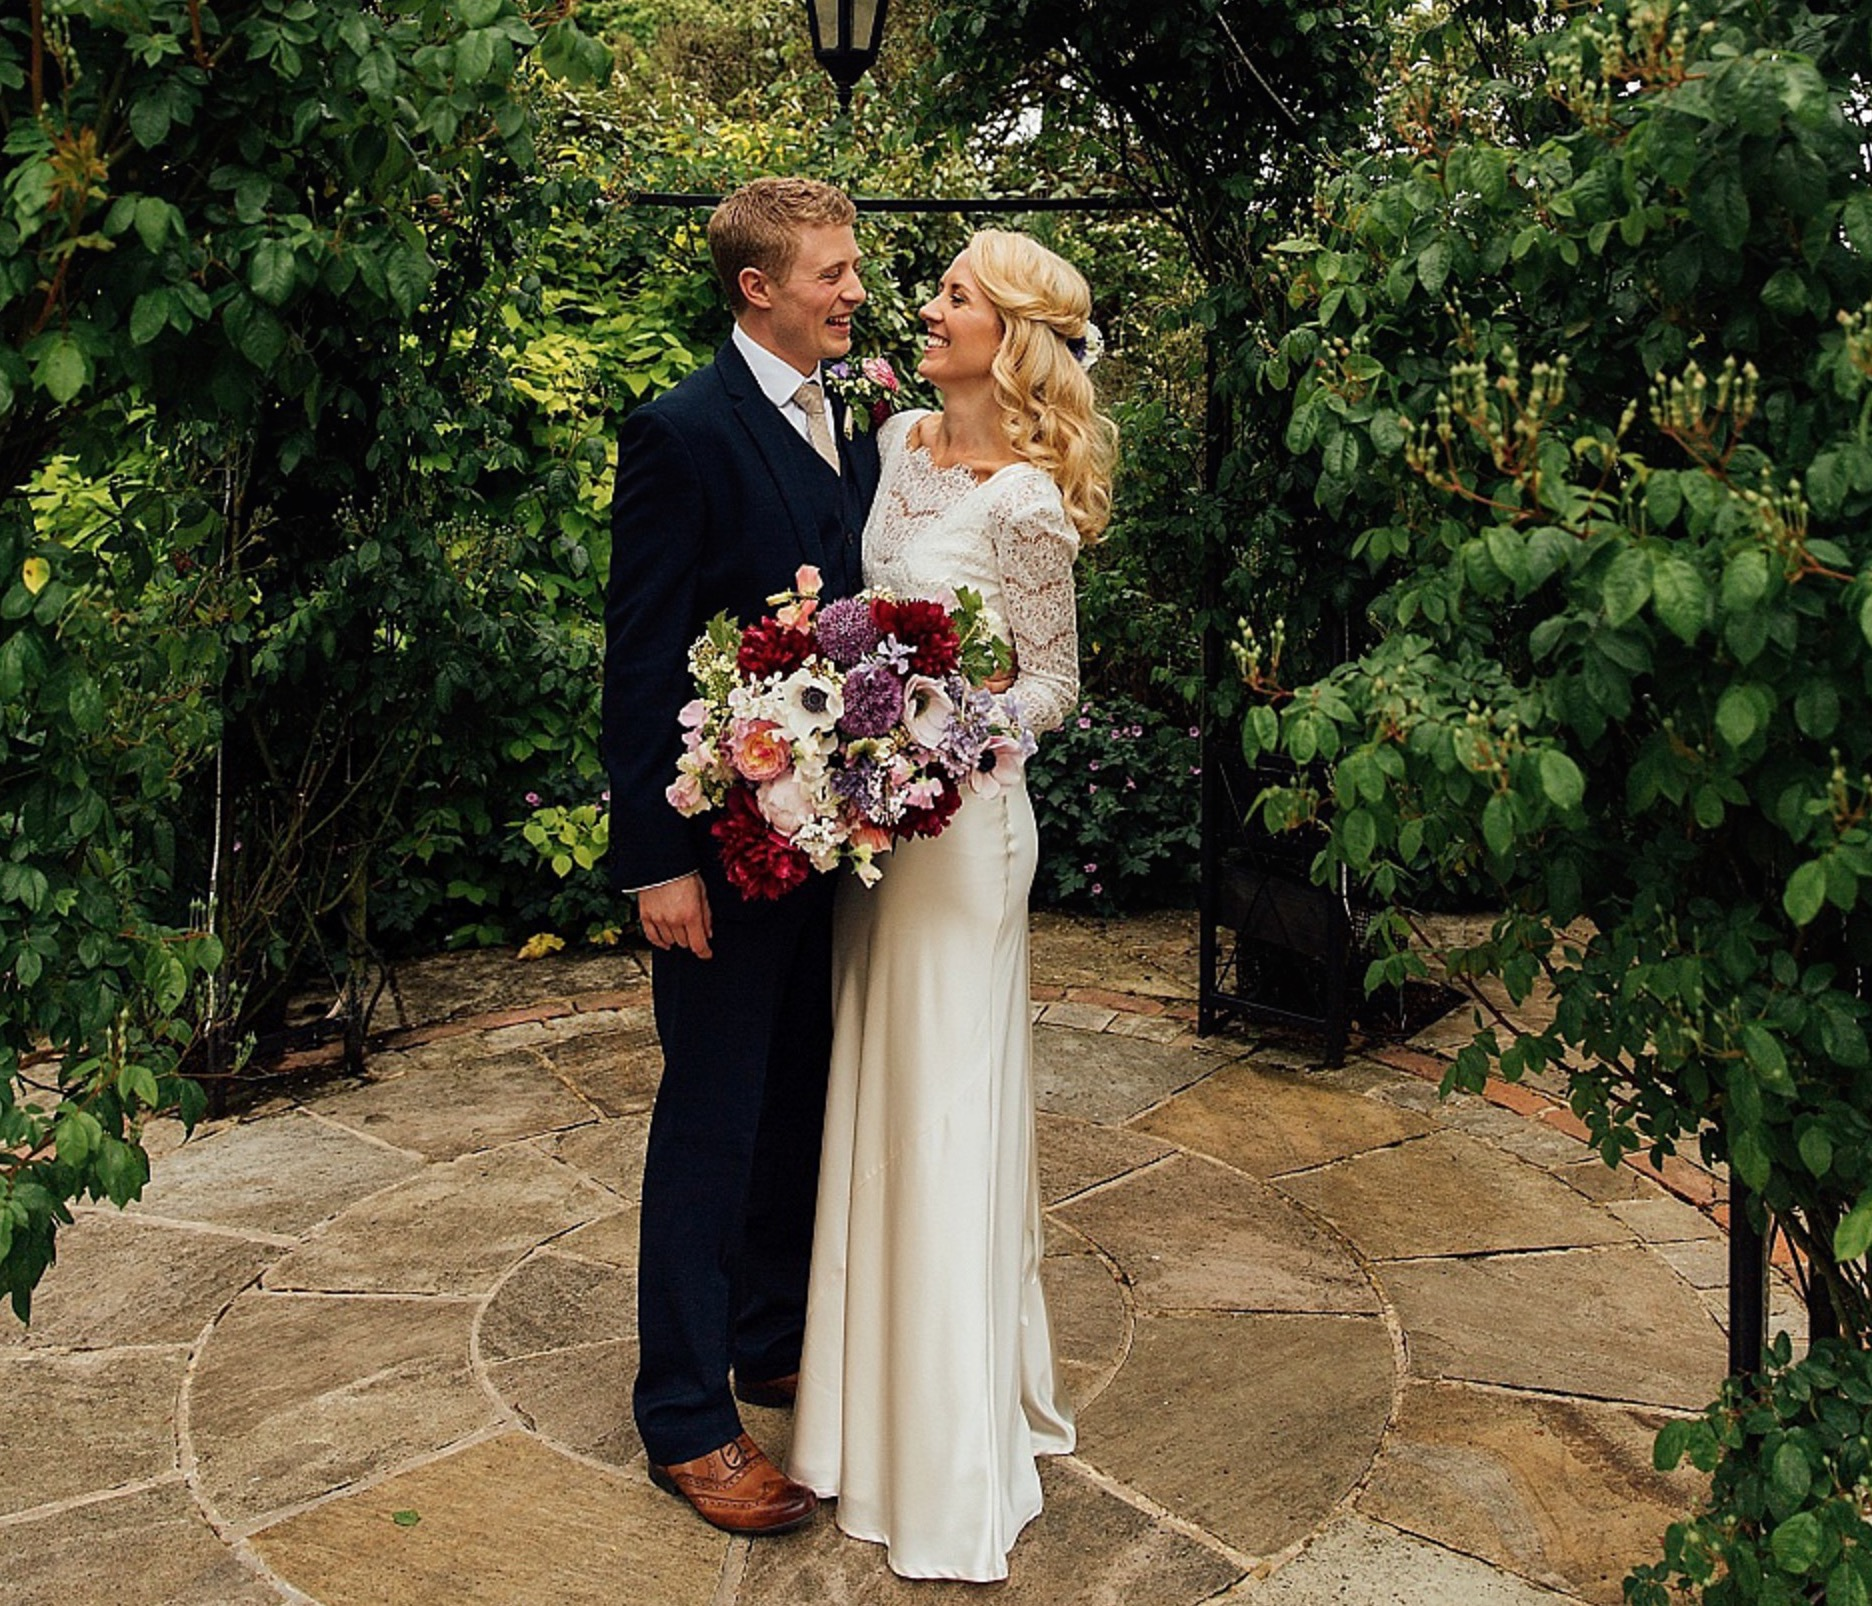 A Charlie Brear Gown for a Colourful, Flower Filled Barn Wedding